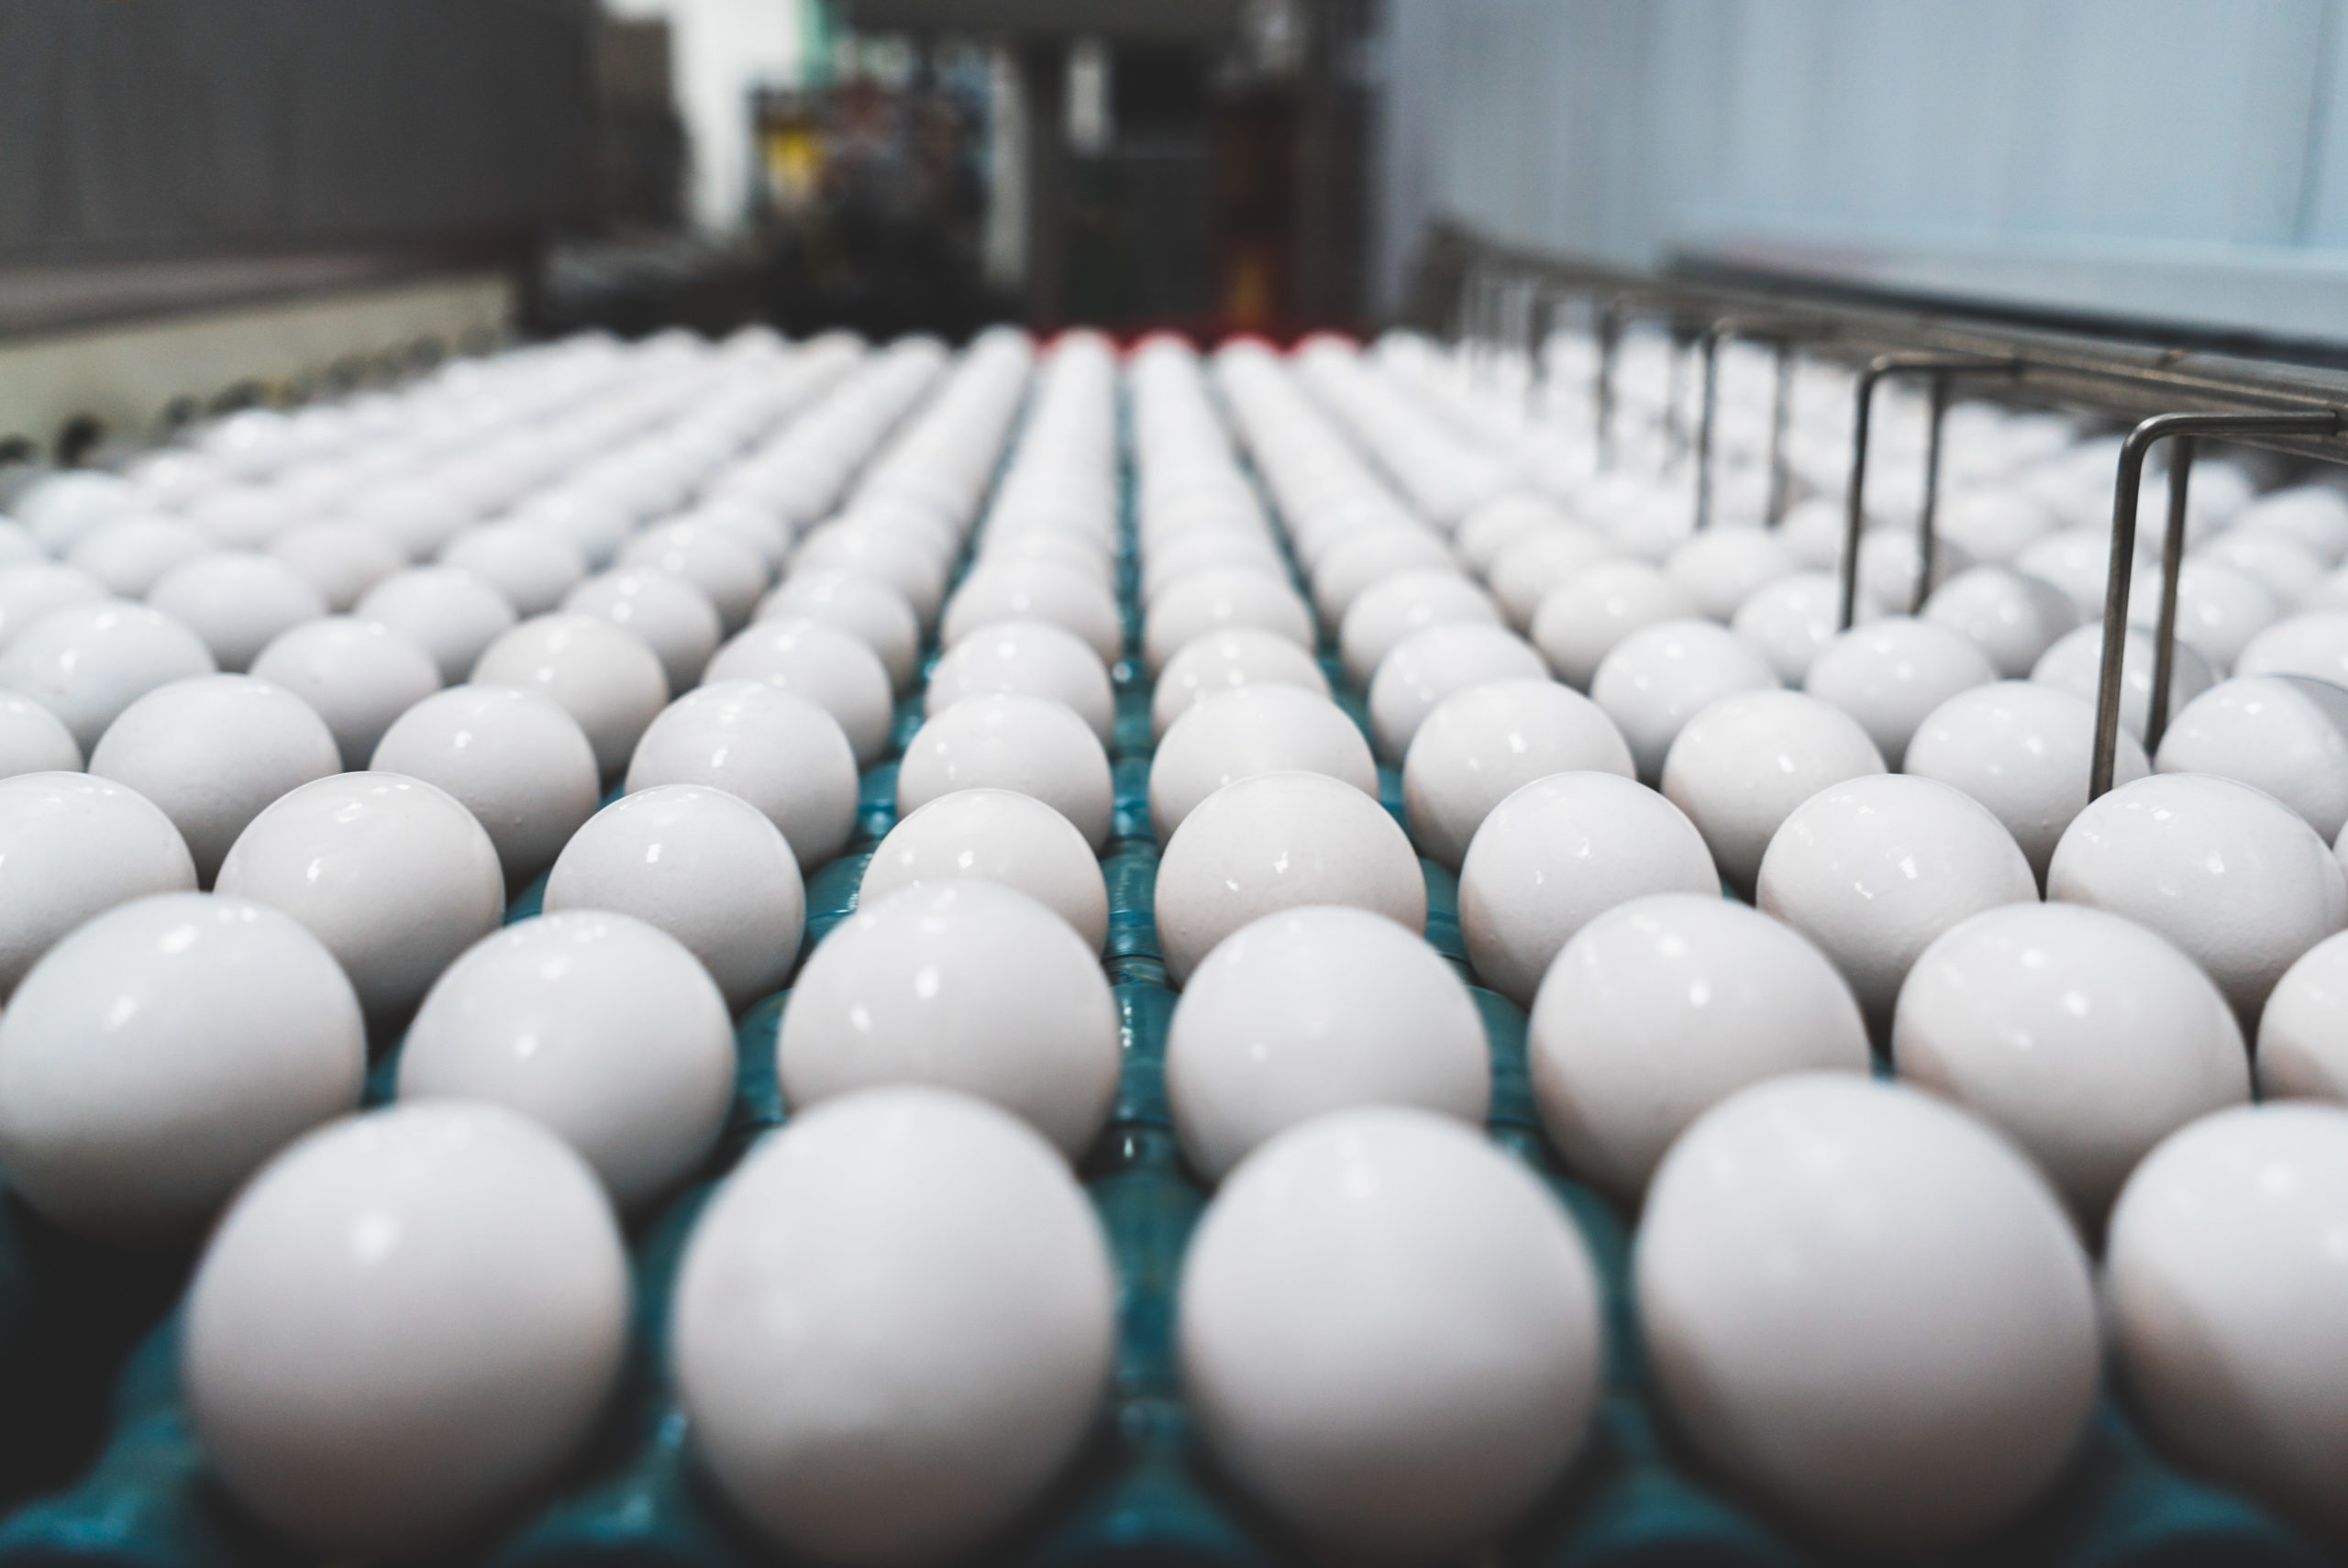 Employee care and a safe environment are top priorities on egg farms